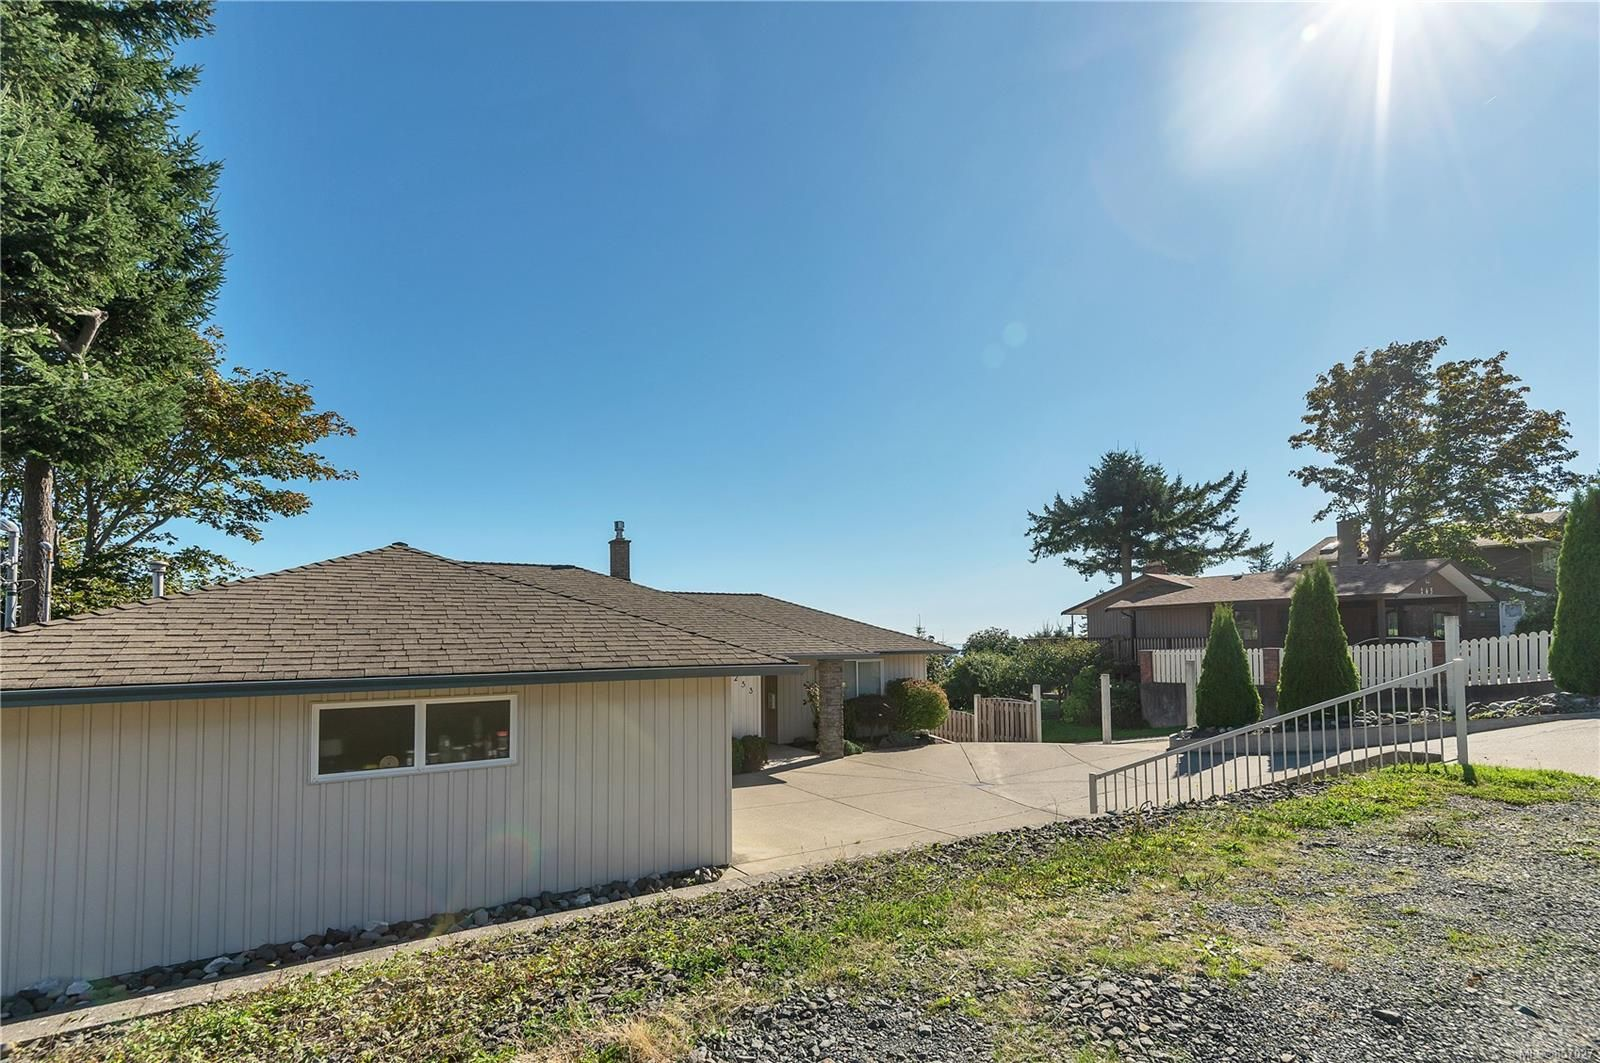 Photo 23: Photos: 253 S Alder St in : CR Campbell River South House for sale (Campbell River)  : MLS®# 857027